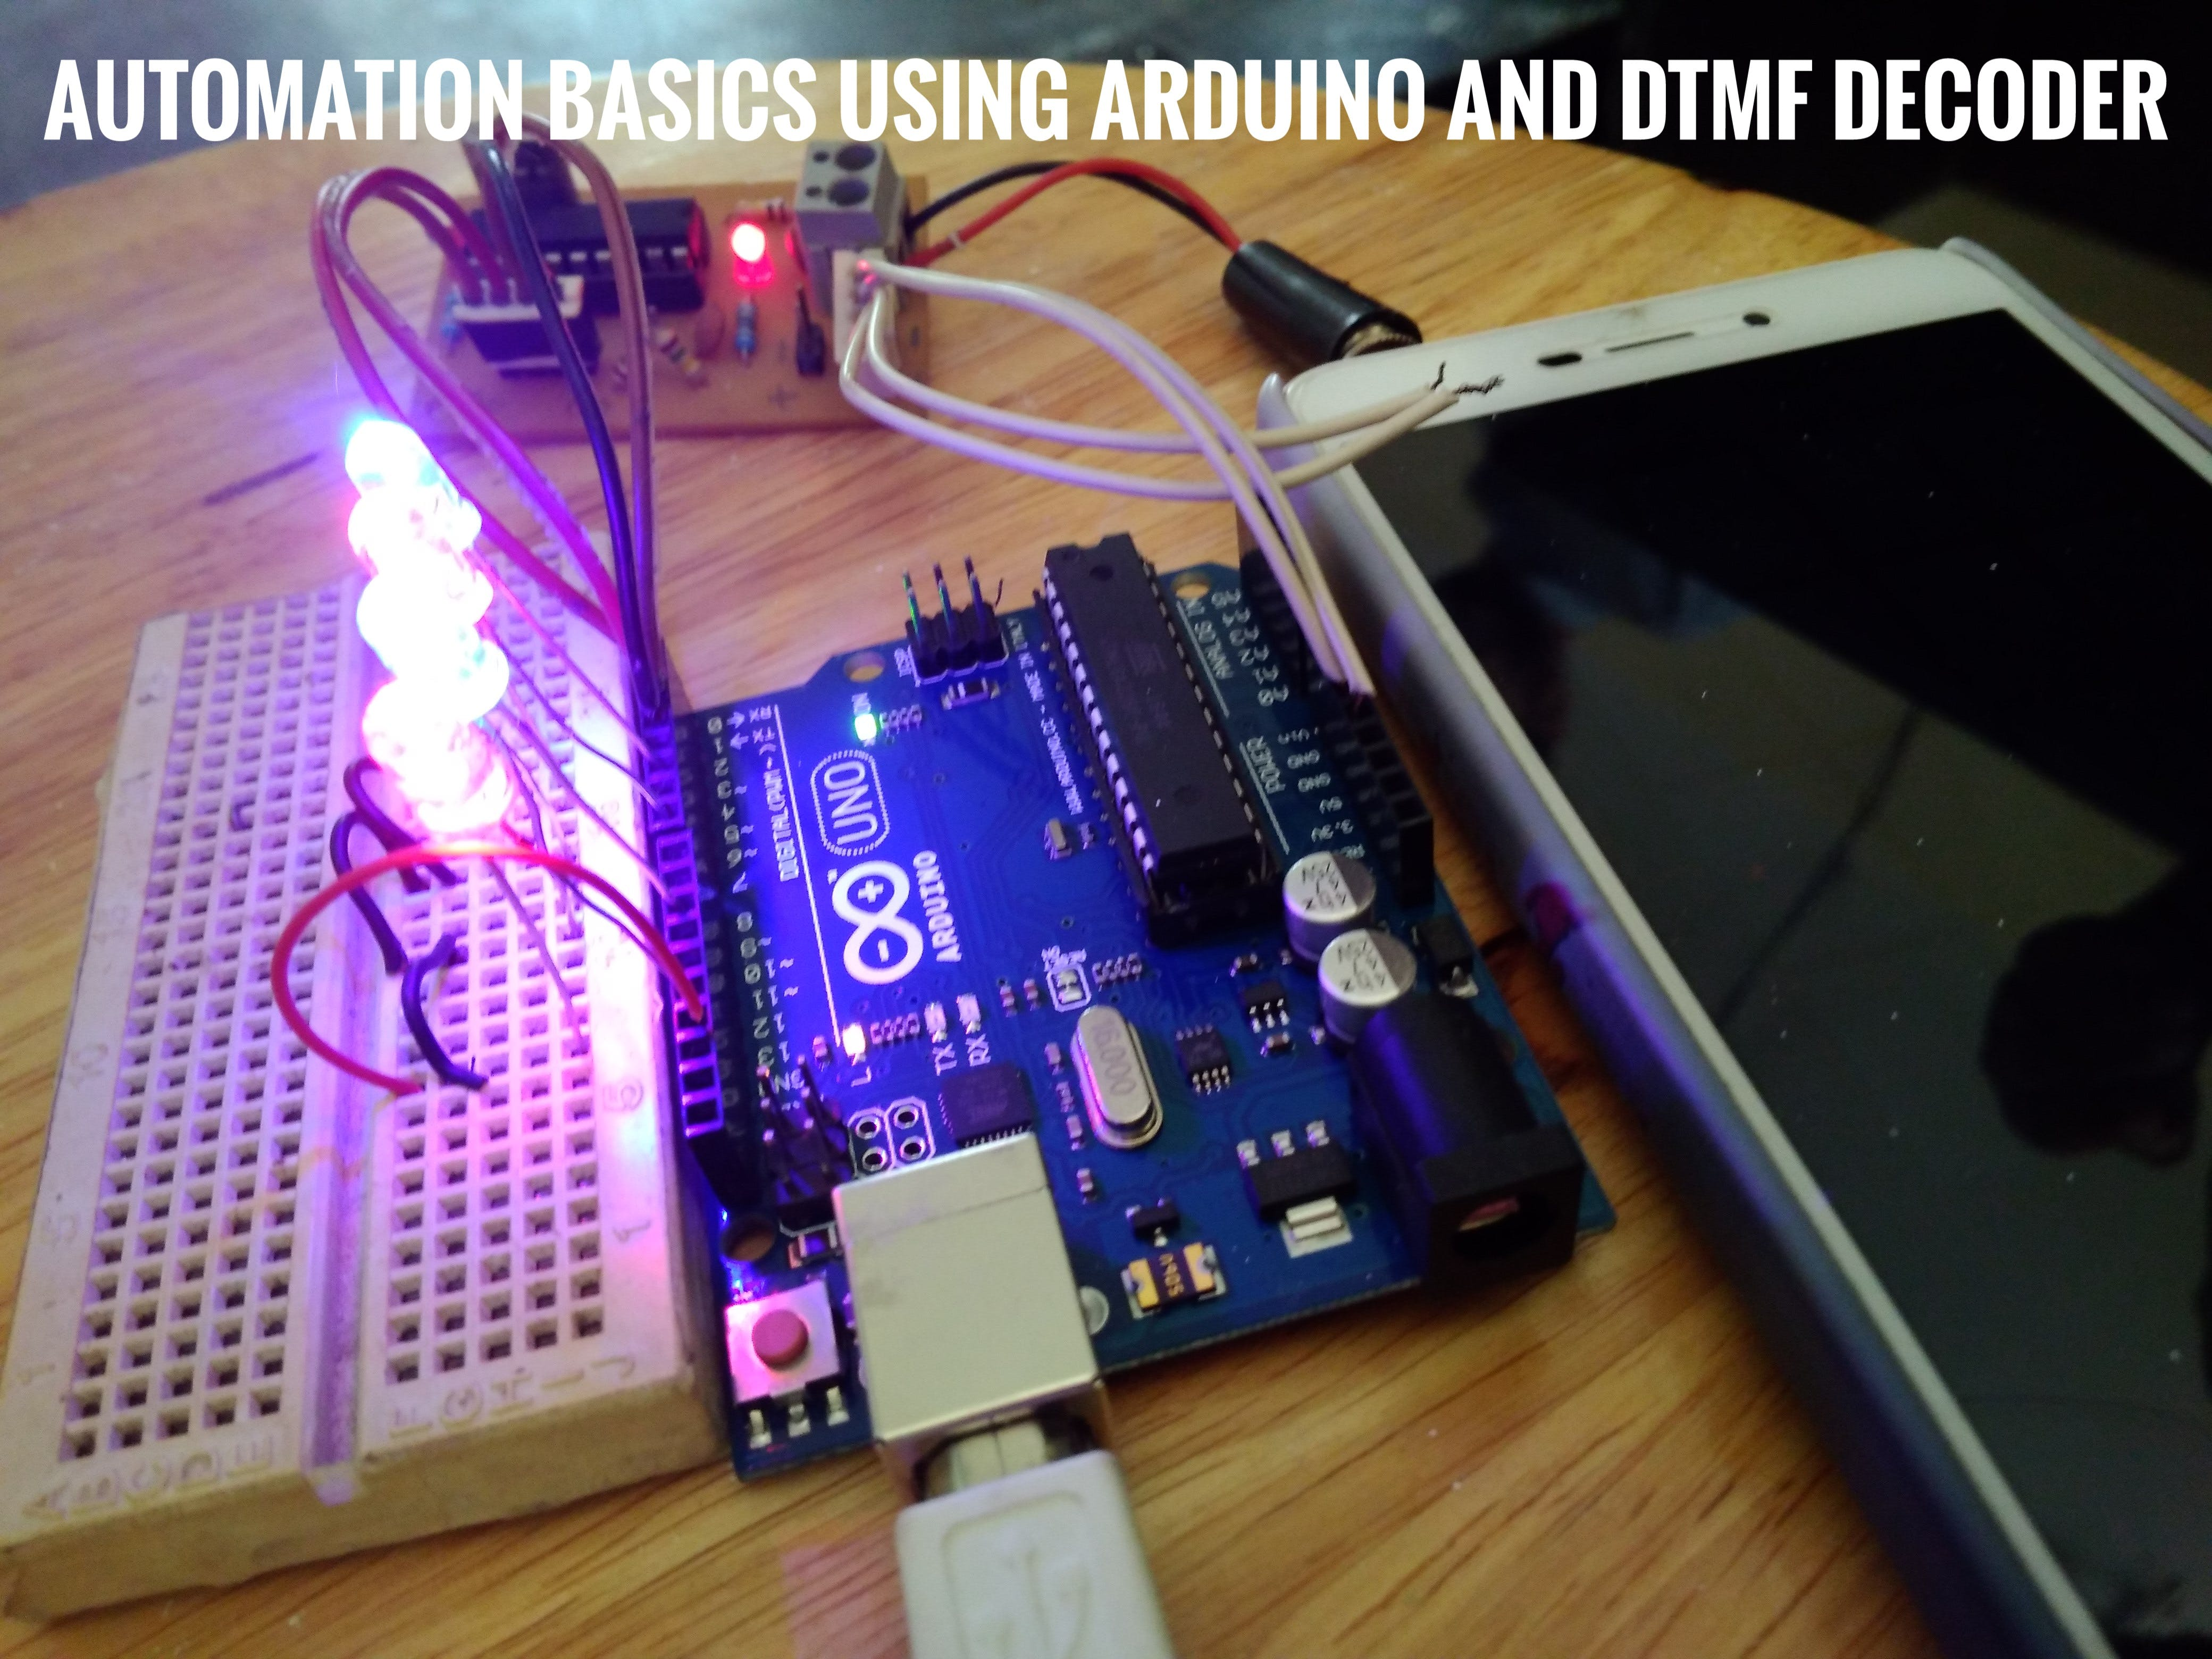 Automation basics using arduino and DTMF decoder